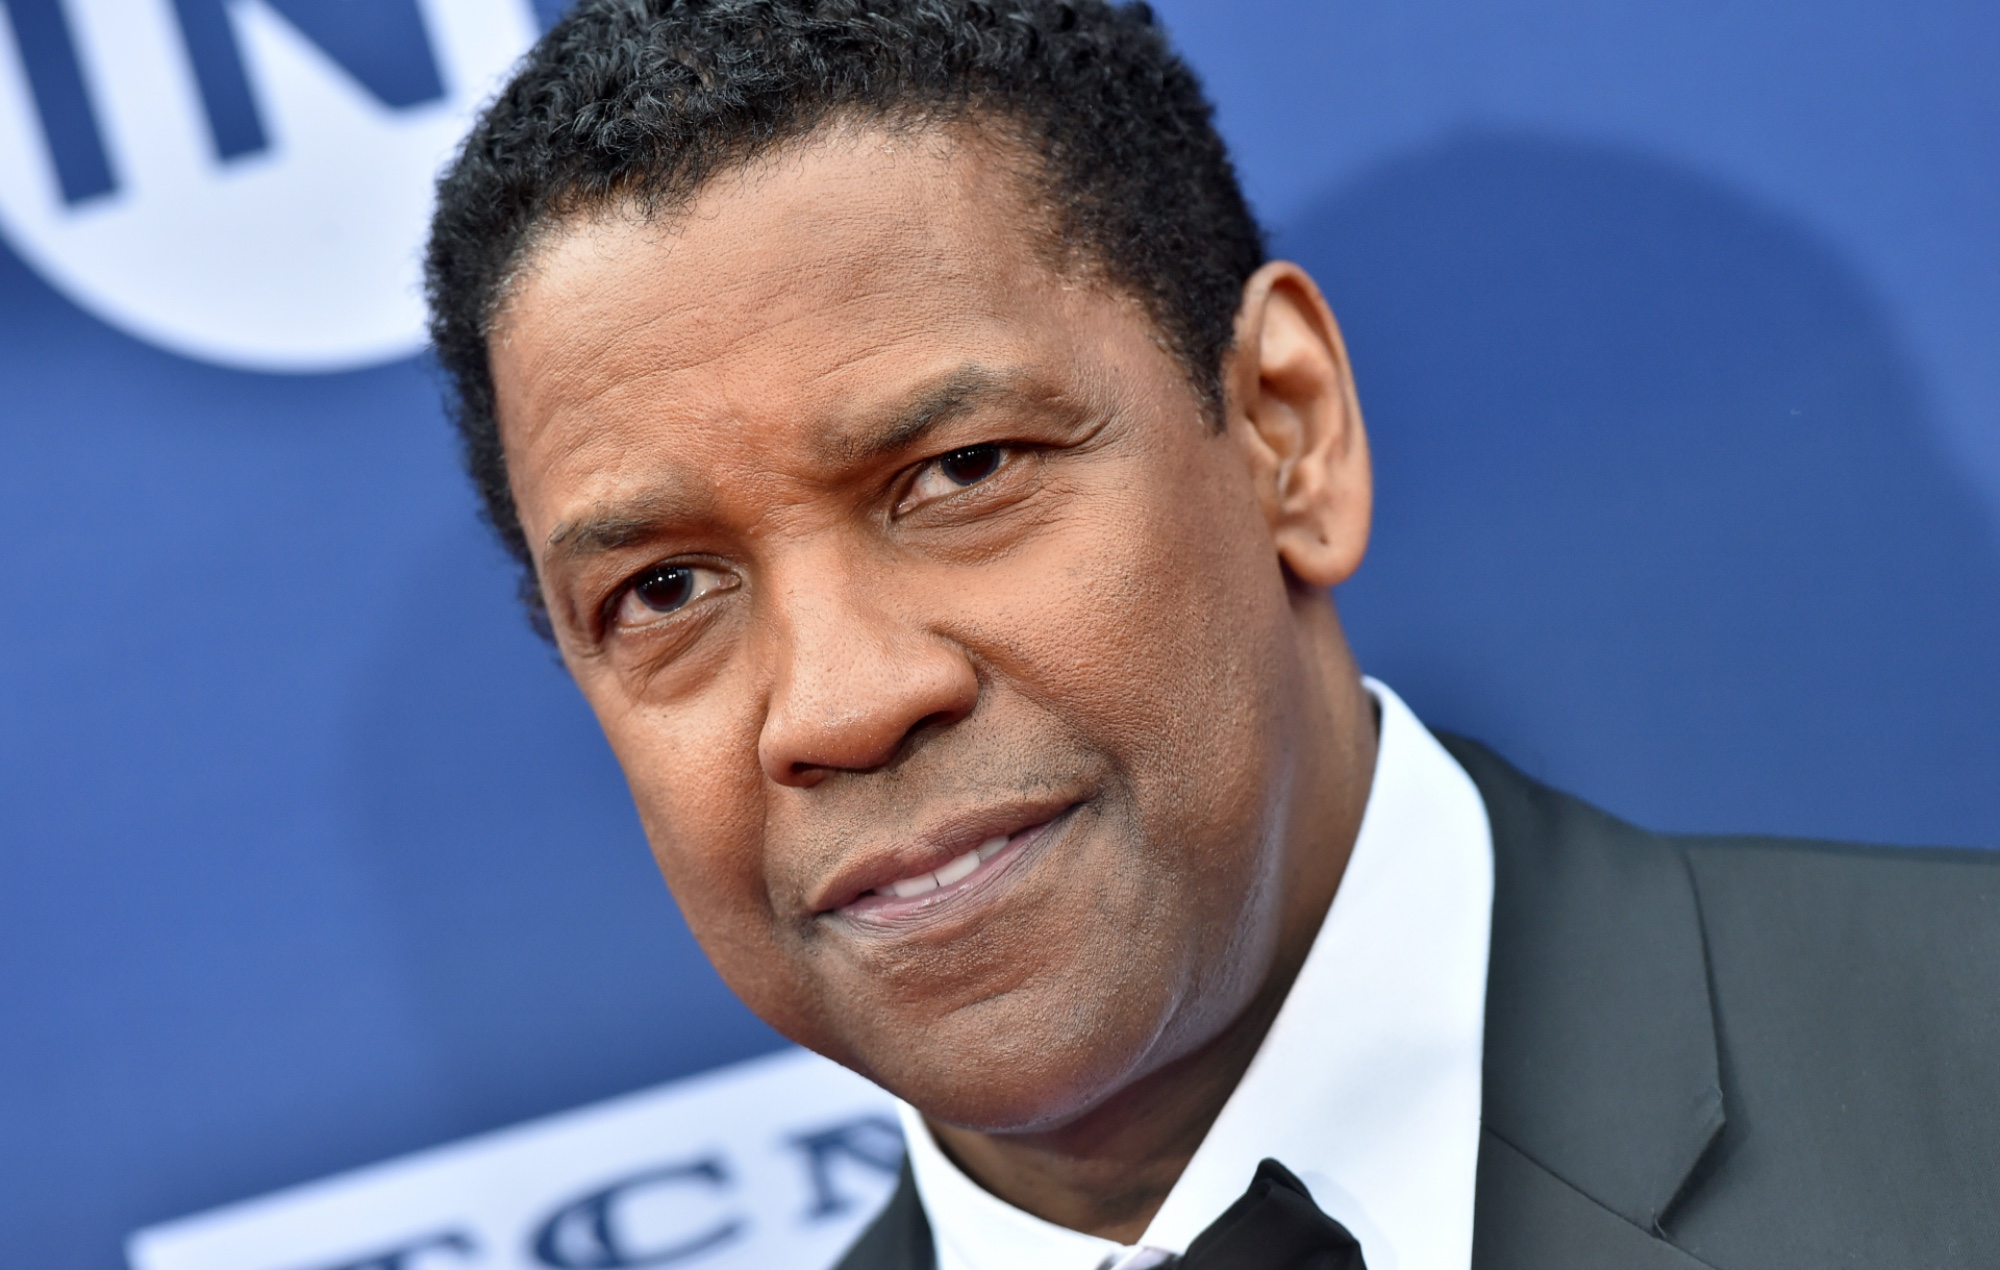 Denzel Washington opens up about his experiences policing in the US thumbnail